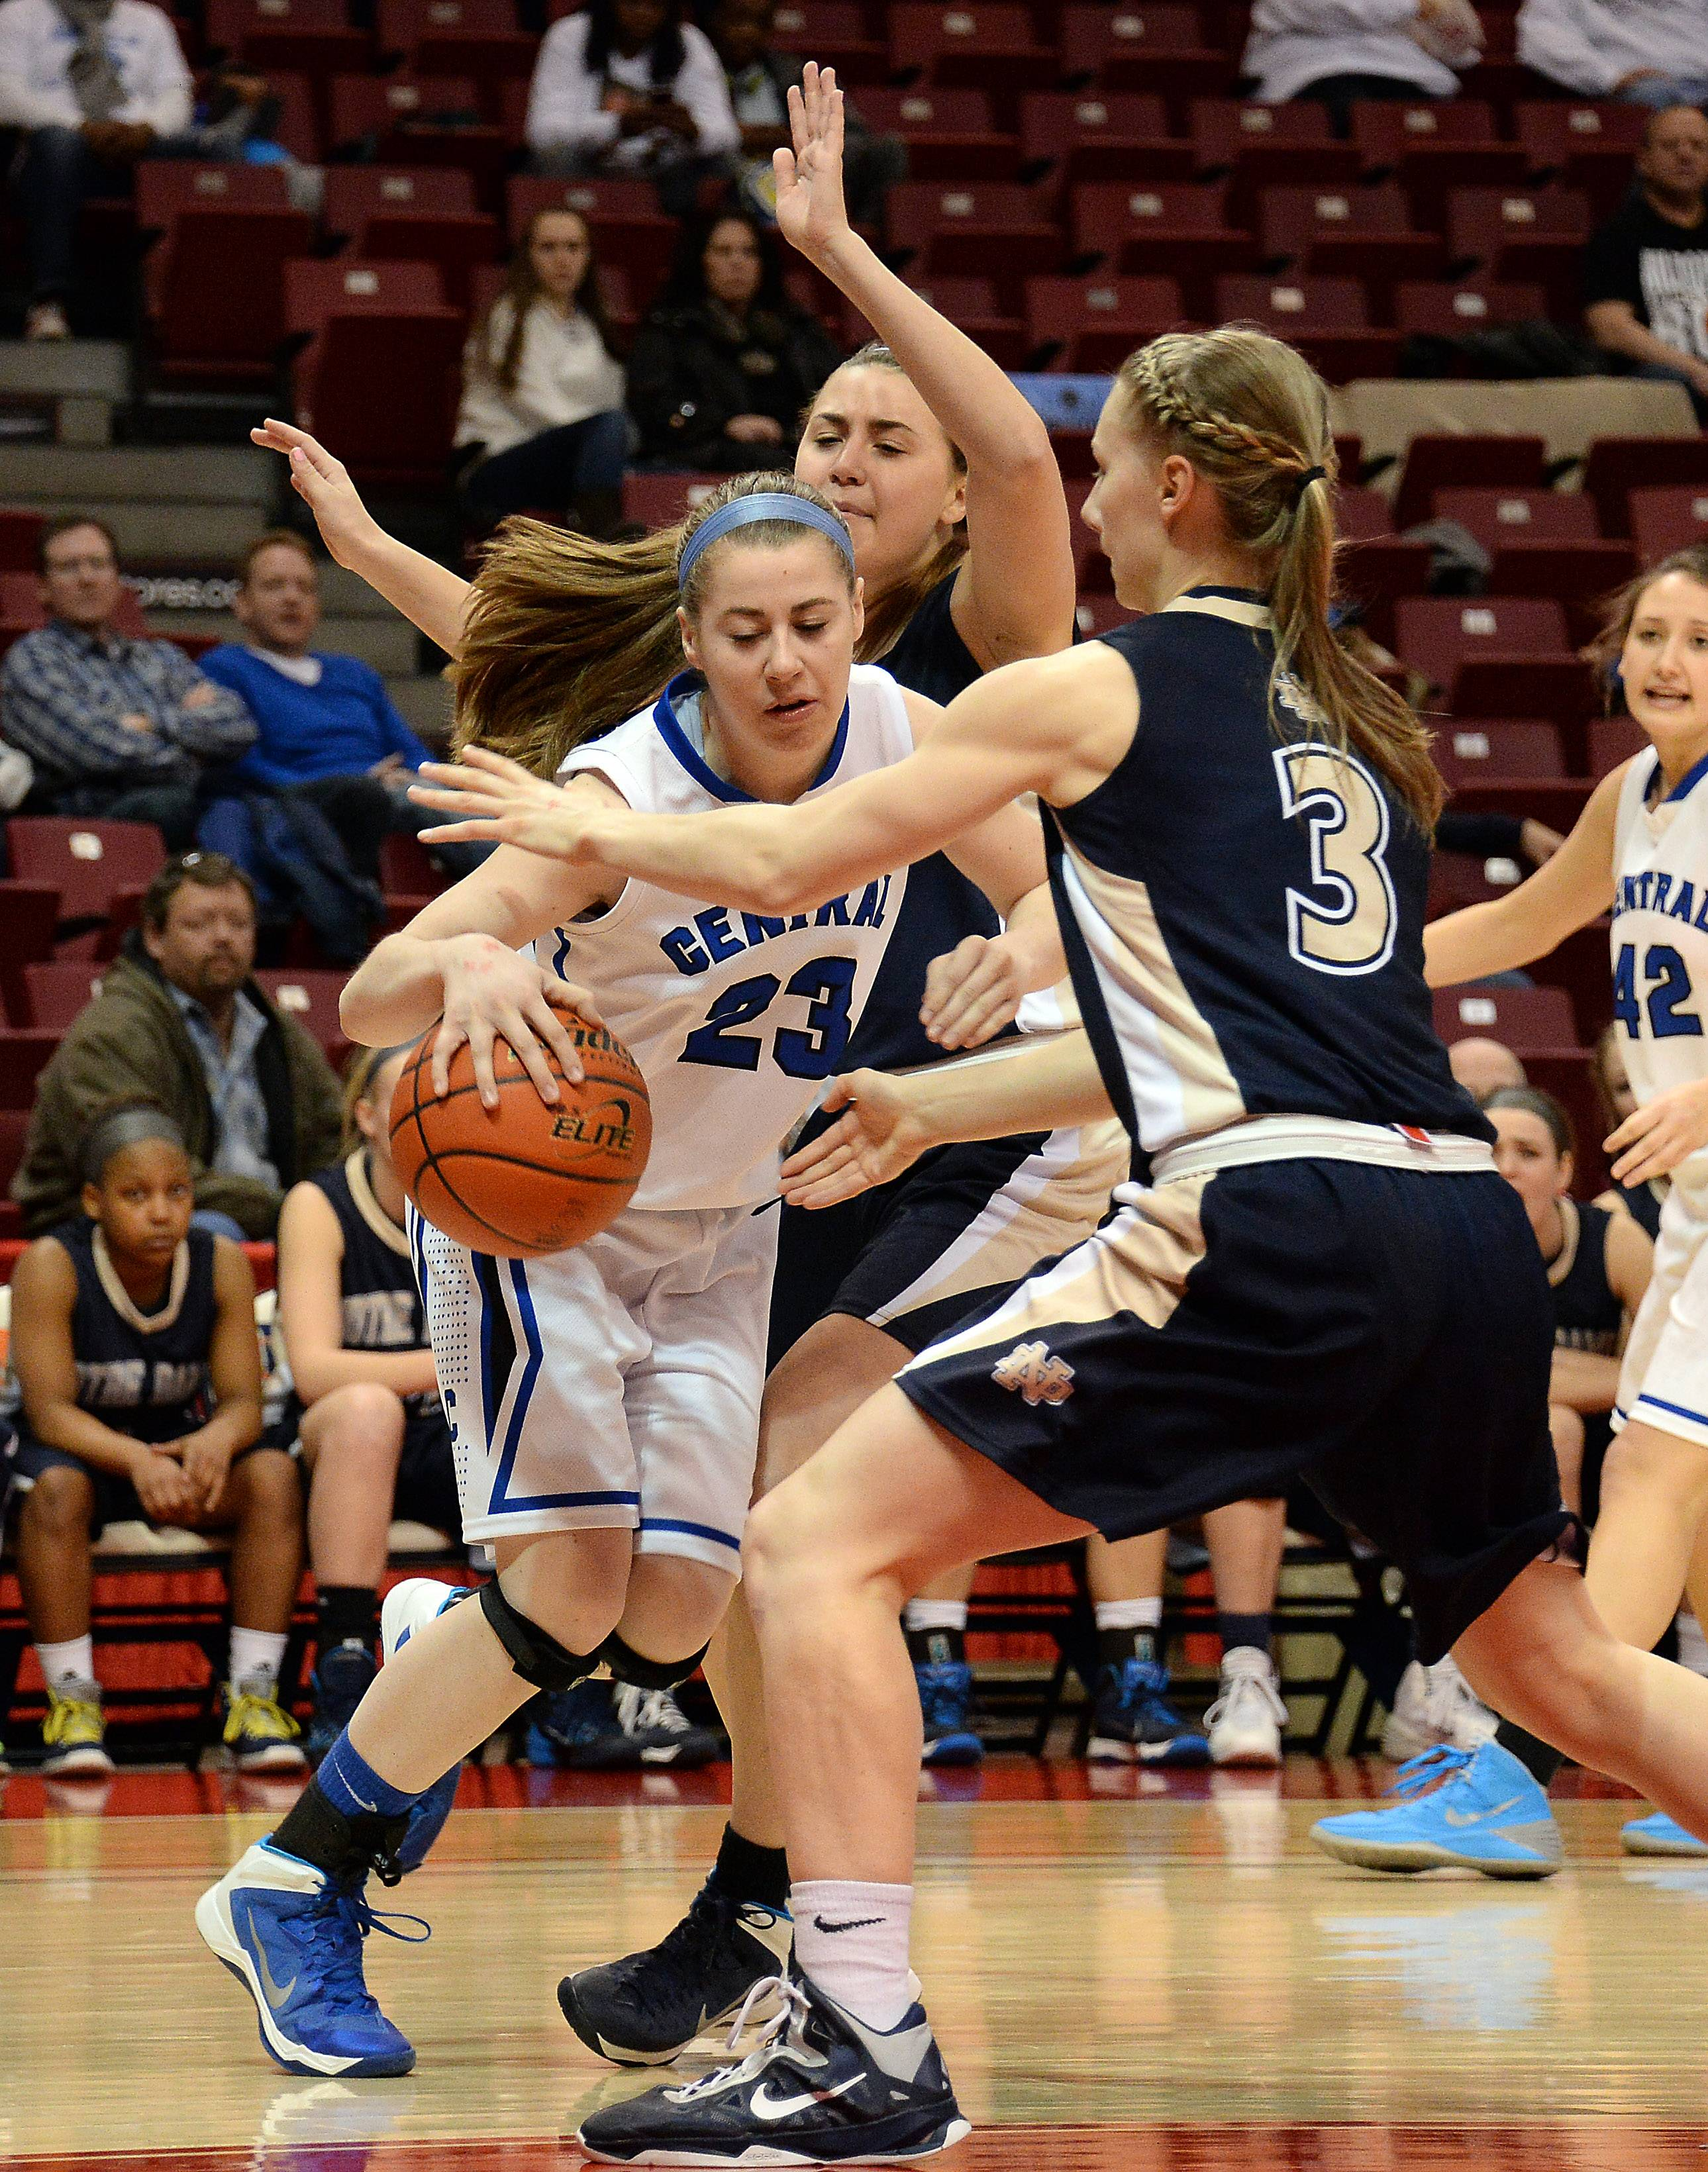 Burlington Central's Aly DeTamble is stopped by Quincy Notre Dame's Kristen Gengenbacher in the first period of girls state basketball in the third place game in Normal on Saturday.